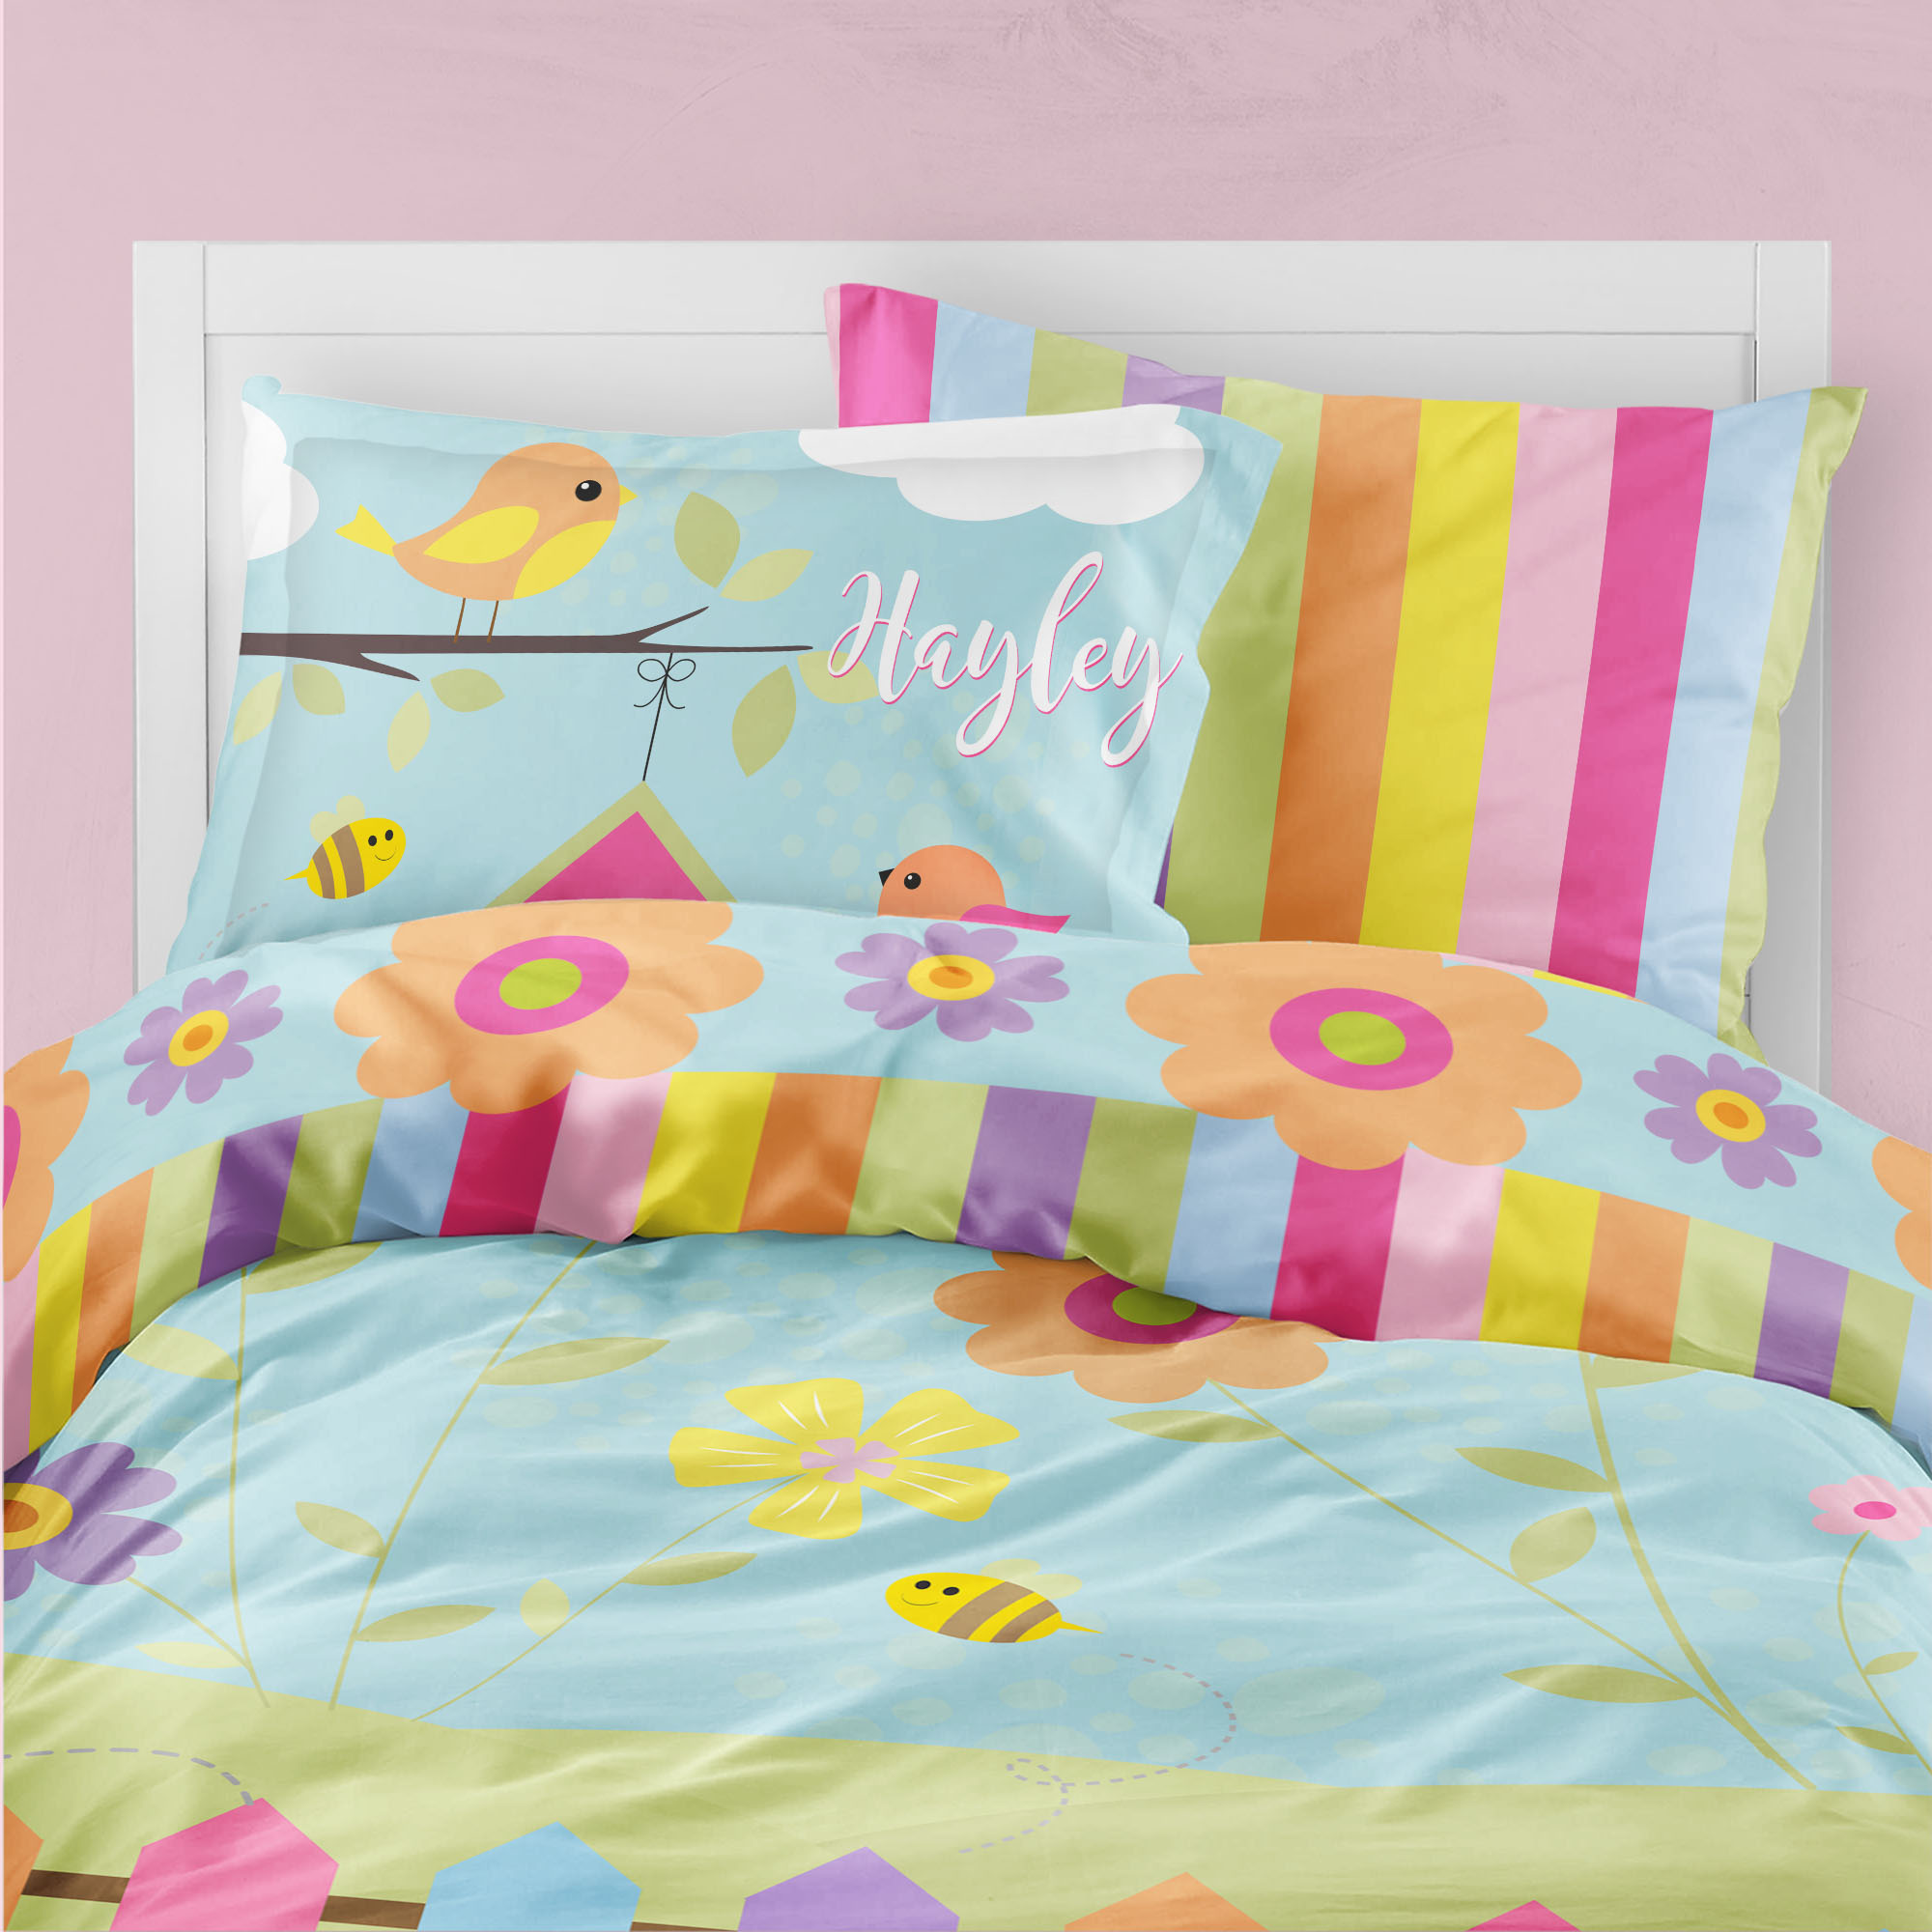 PK00021-TweetDreams Tweet Dreams Little Birdies Theme Bedding Kids Bedroom Set by Pickleberry Kids